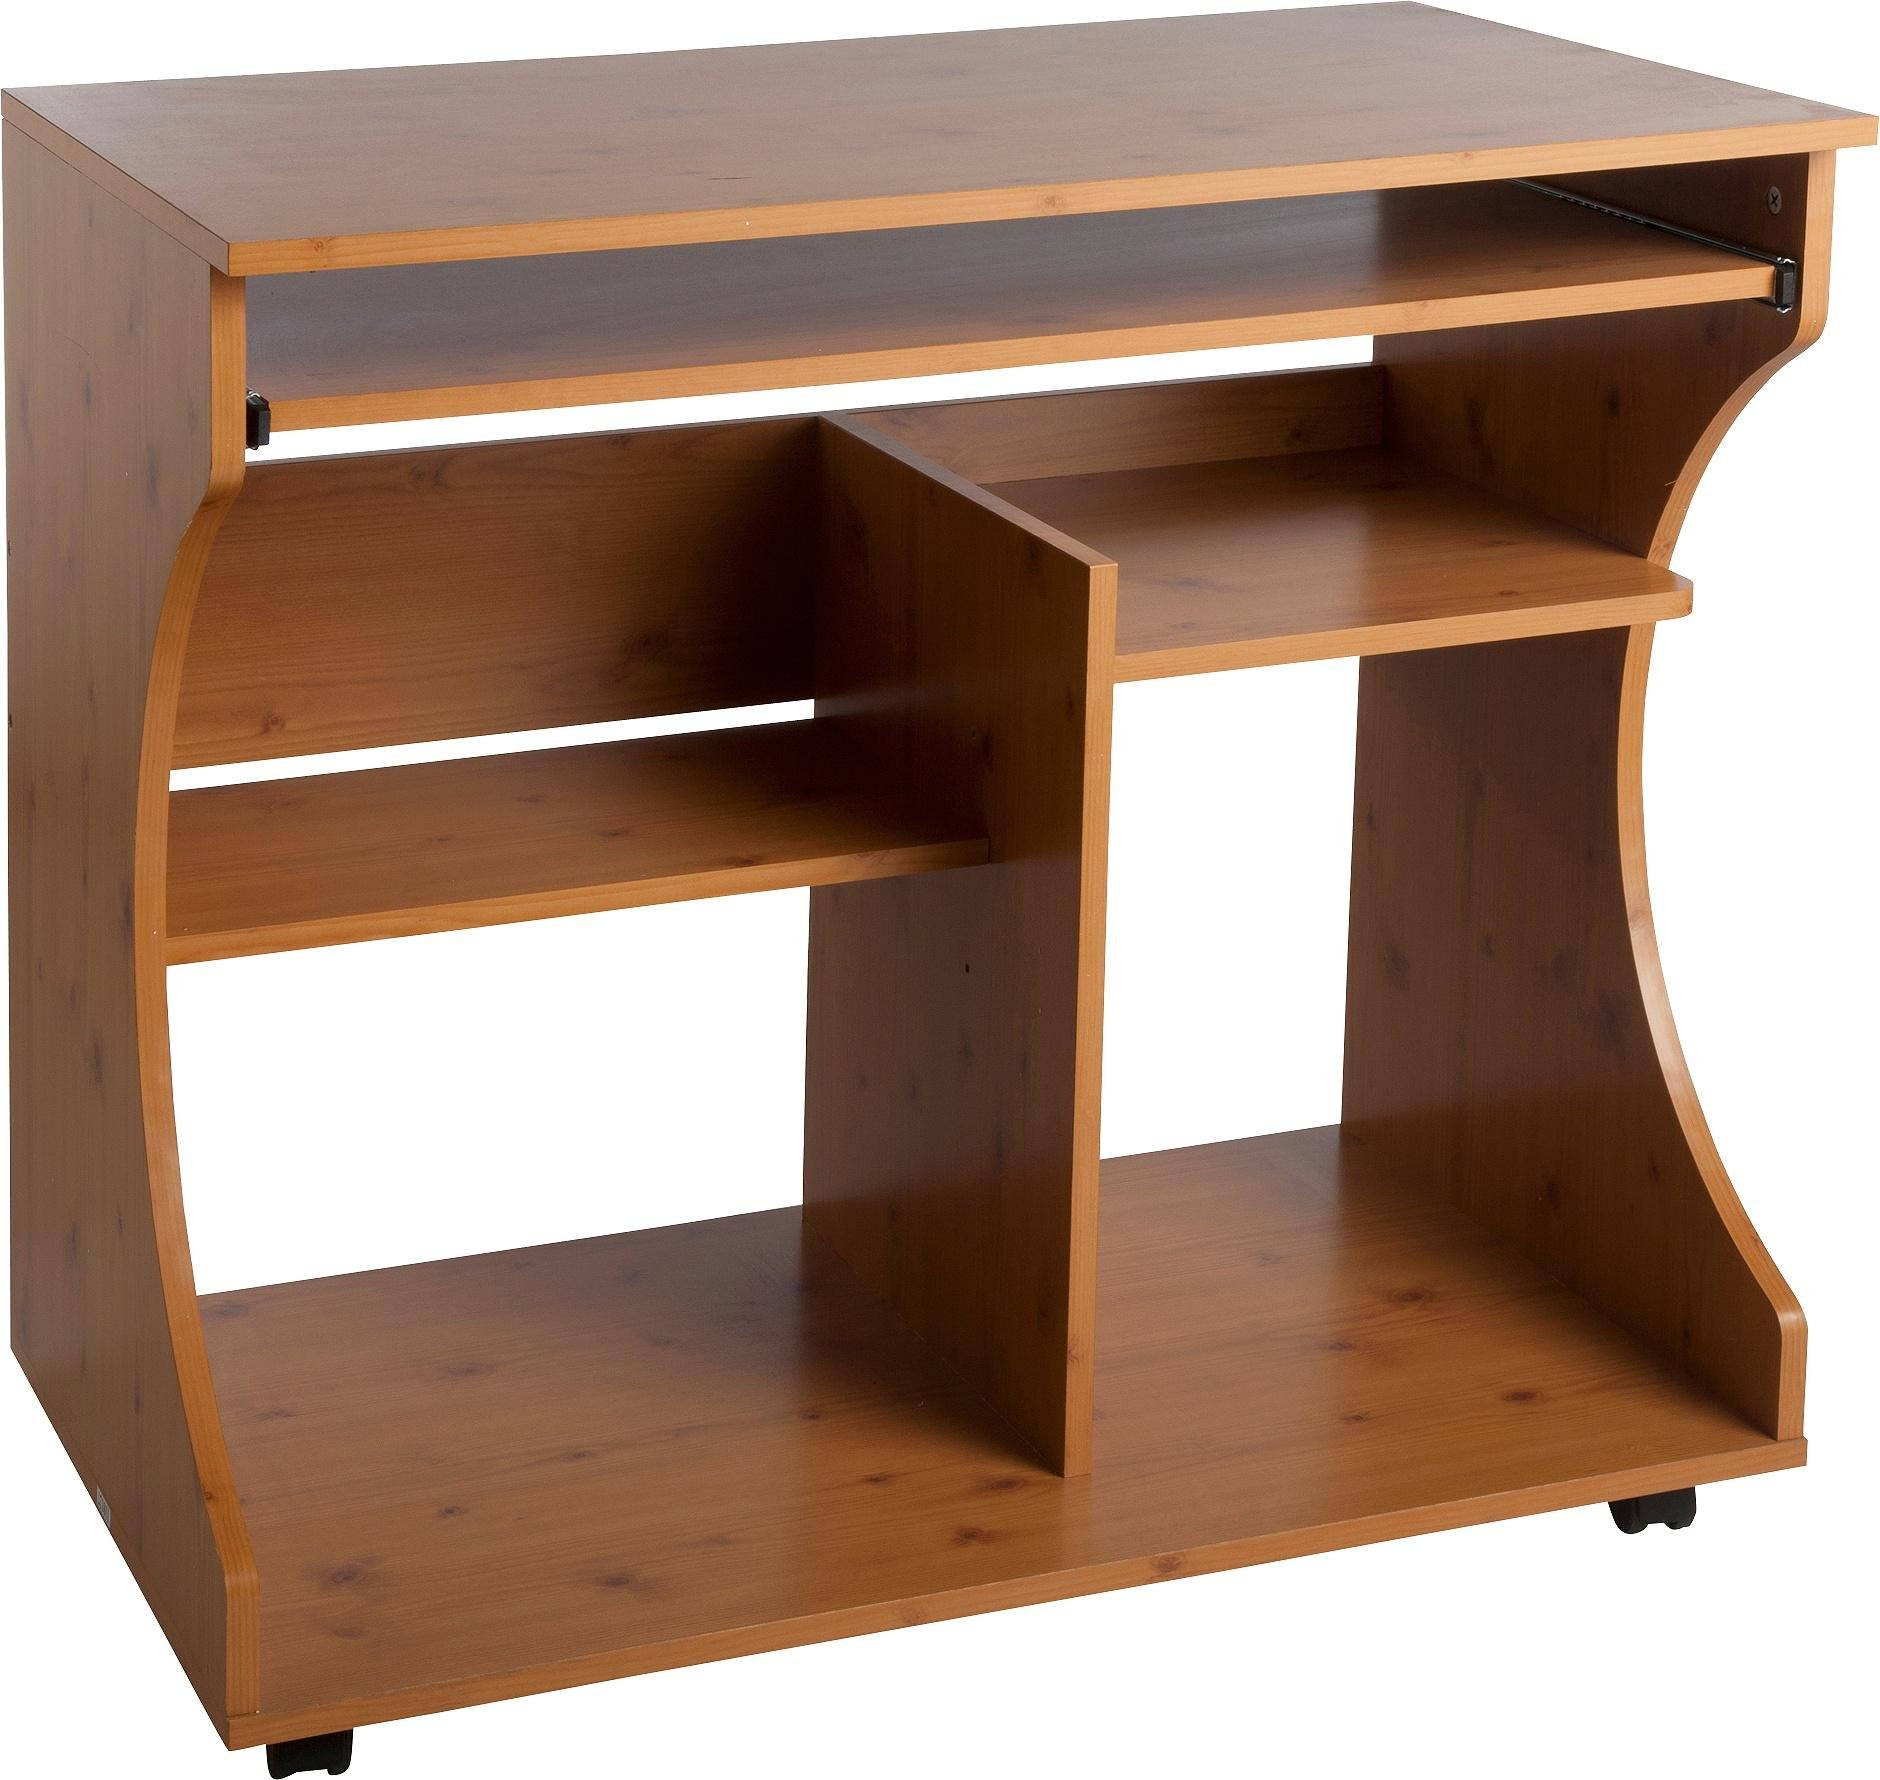 Image Result For Fast Delivery Office Furniture